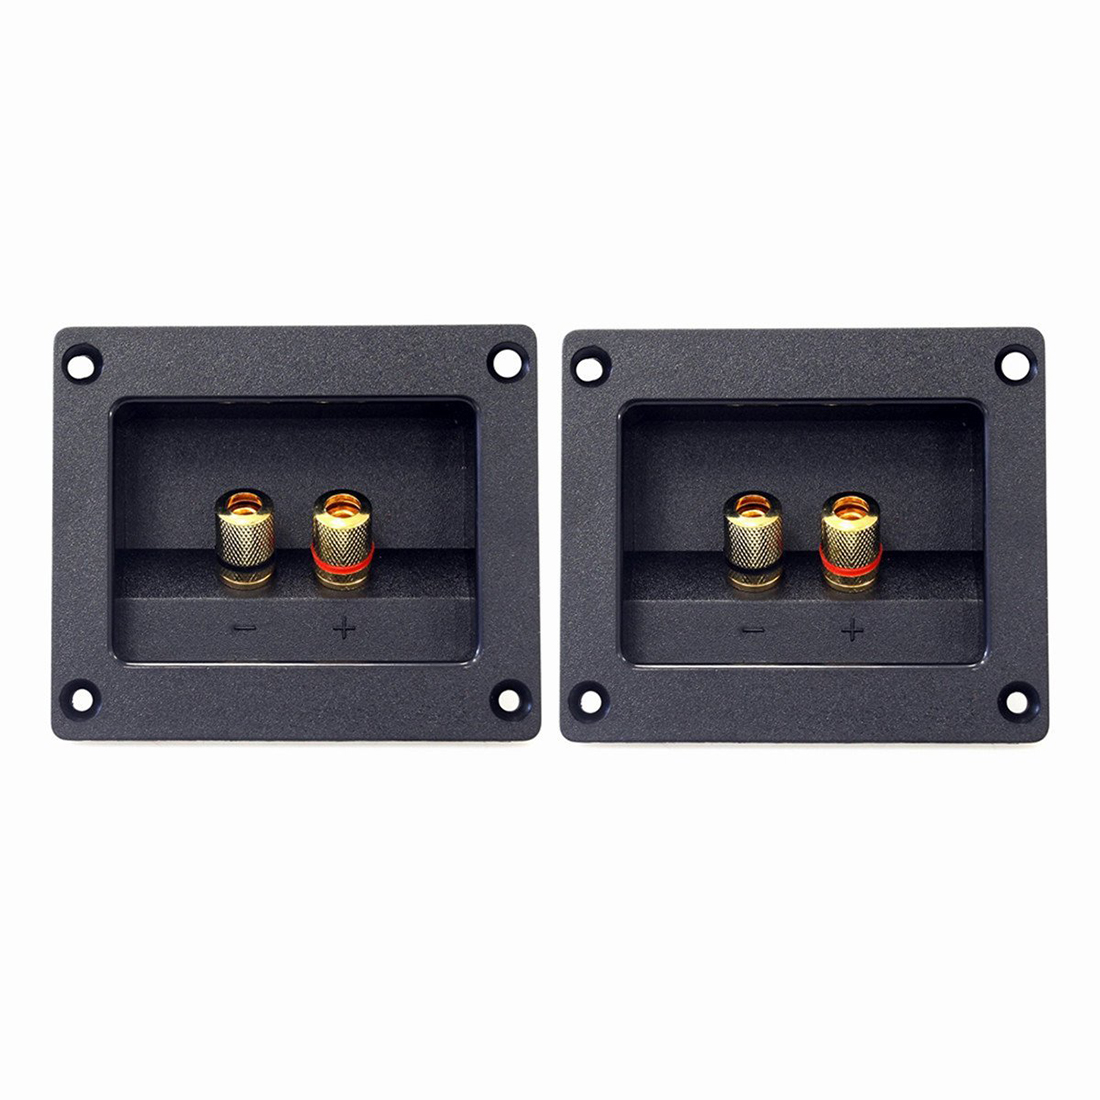 THGS 2pcs DIY Home Car Stereo 2-way Speaker Box Terminal Round Square Spring Cup Connector Binding Post Banana jack and plugs